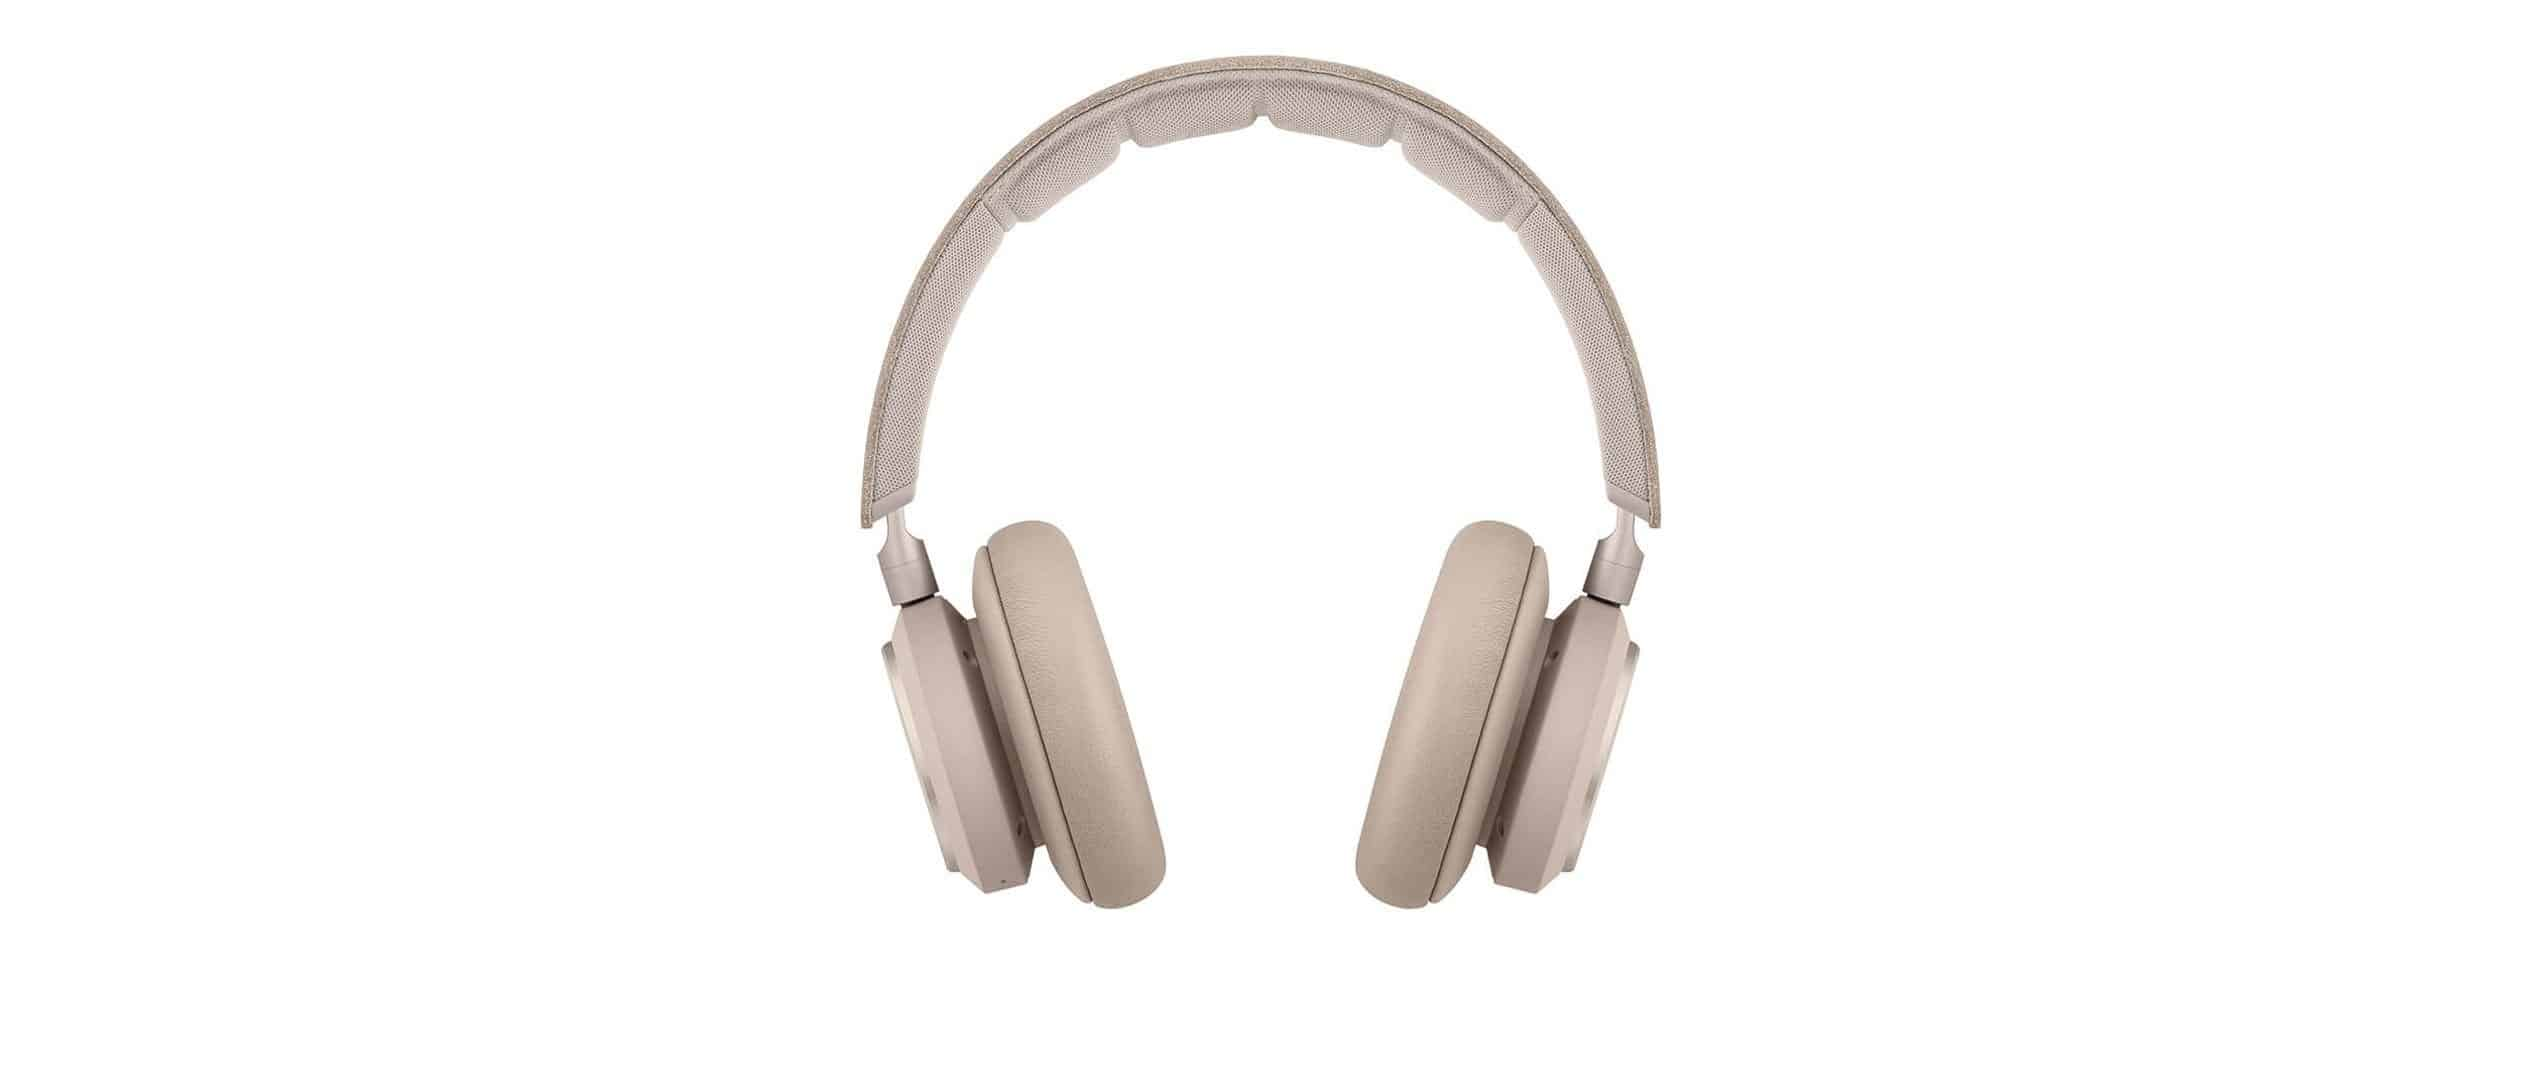 Beoplay H9i 2